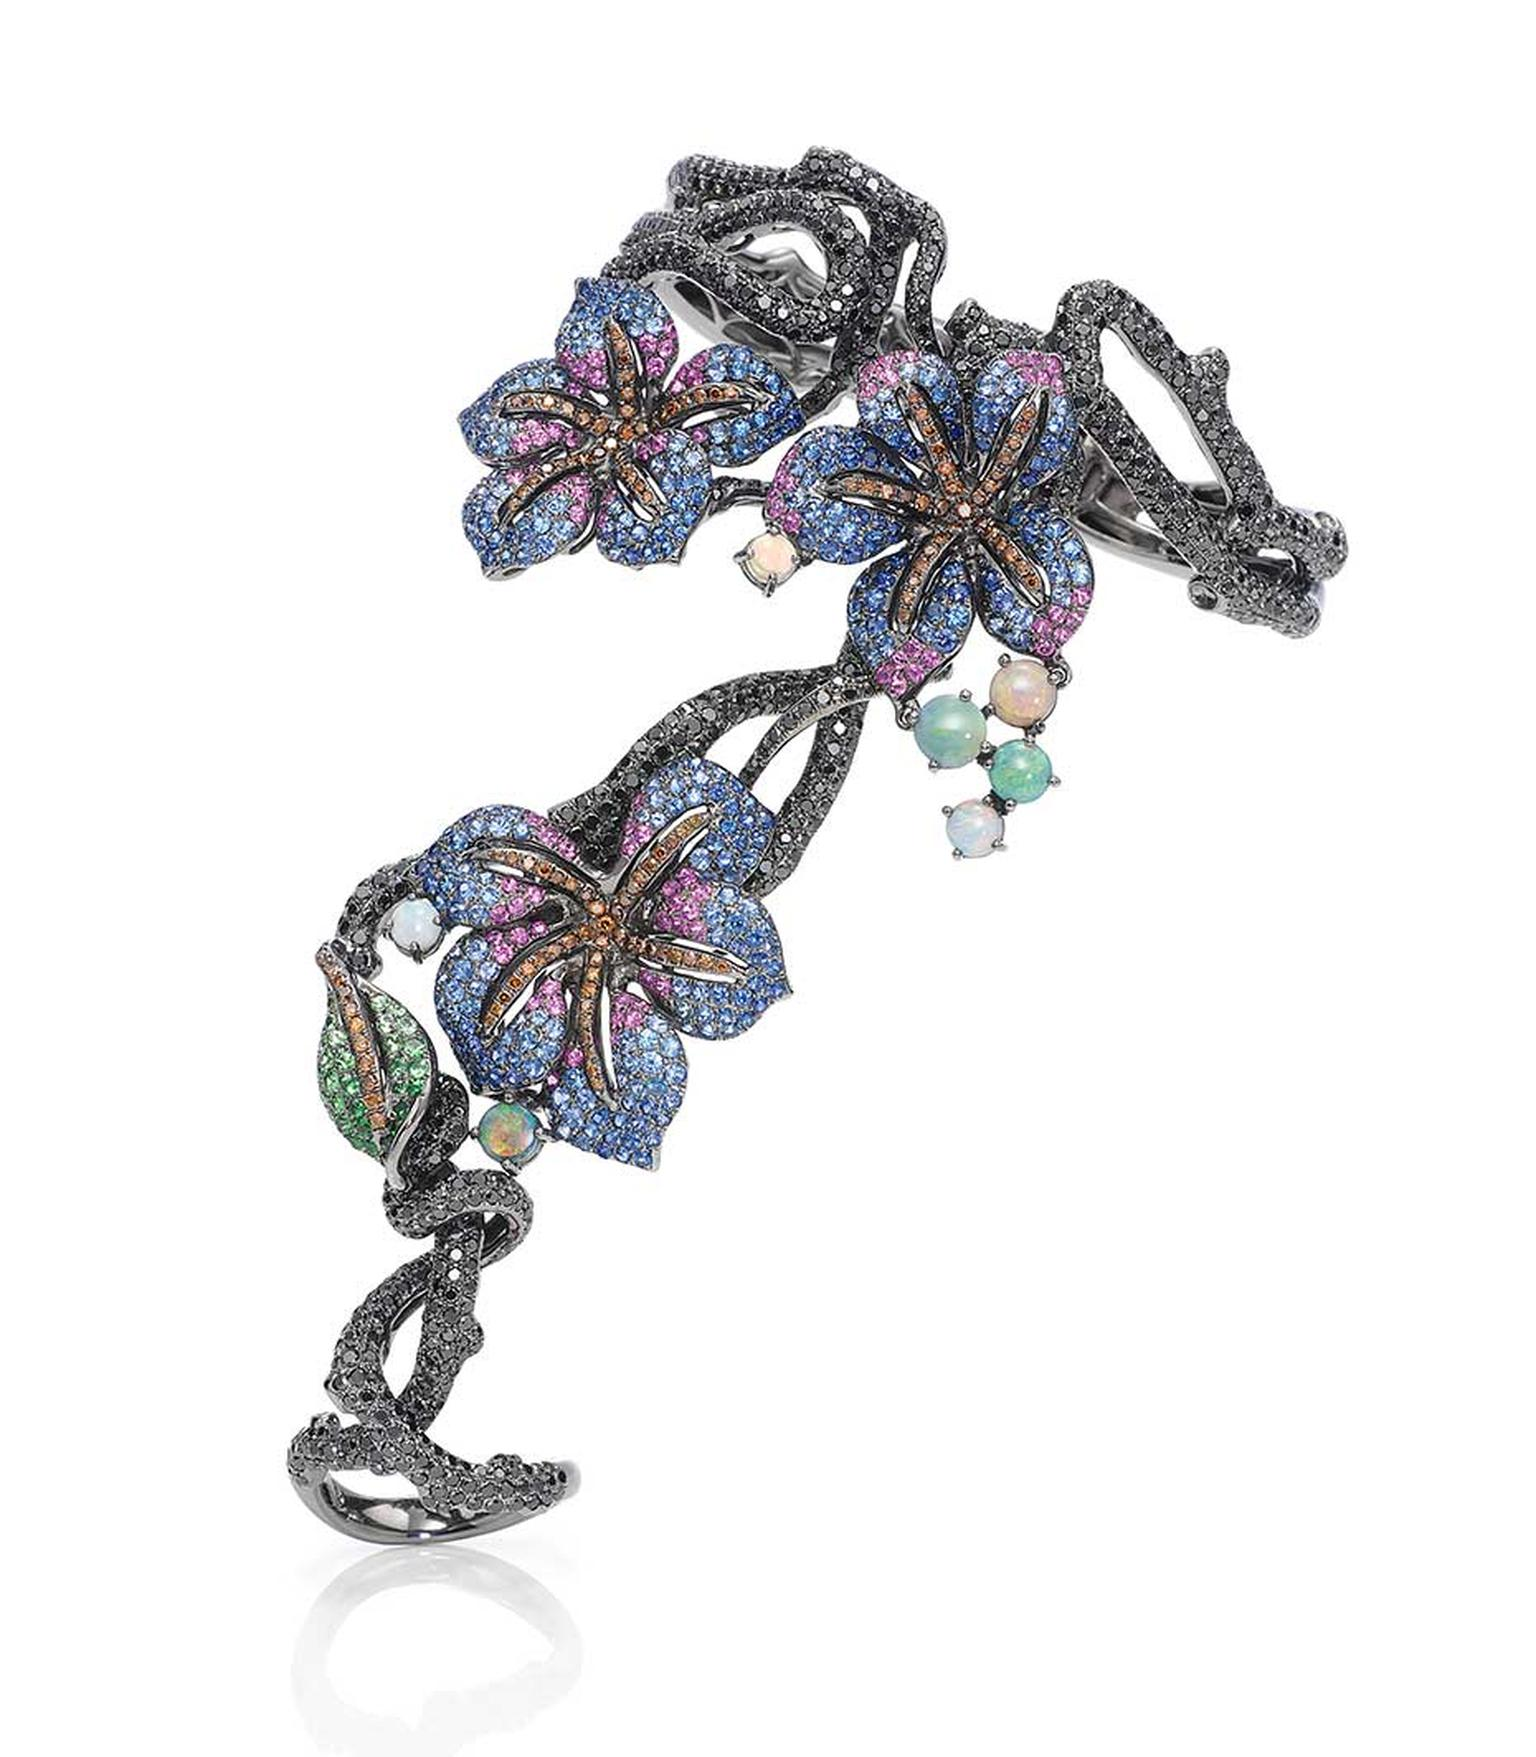 See Wendy Yue's Midnight Flora hand bracelet with black diamonds, opals, tsavorites, blue sapphires and pink sapphires in black gold at the Couture Show Las Vegas